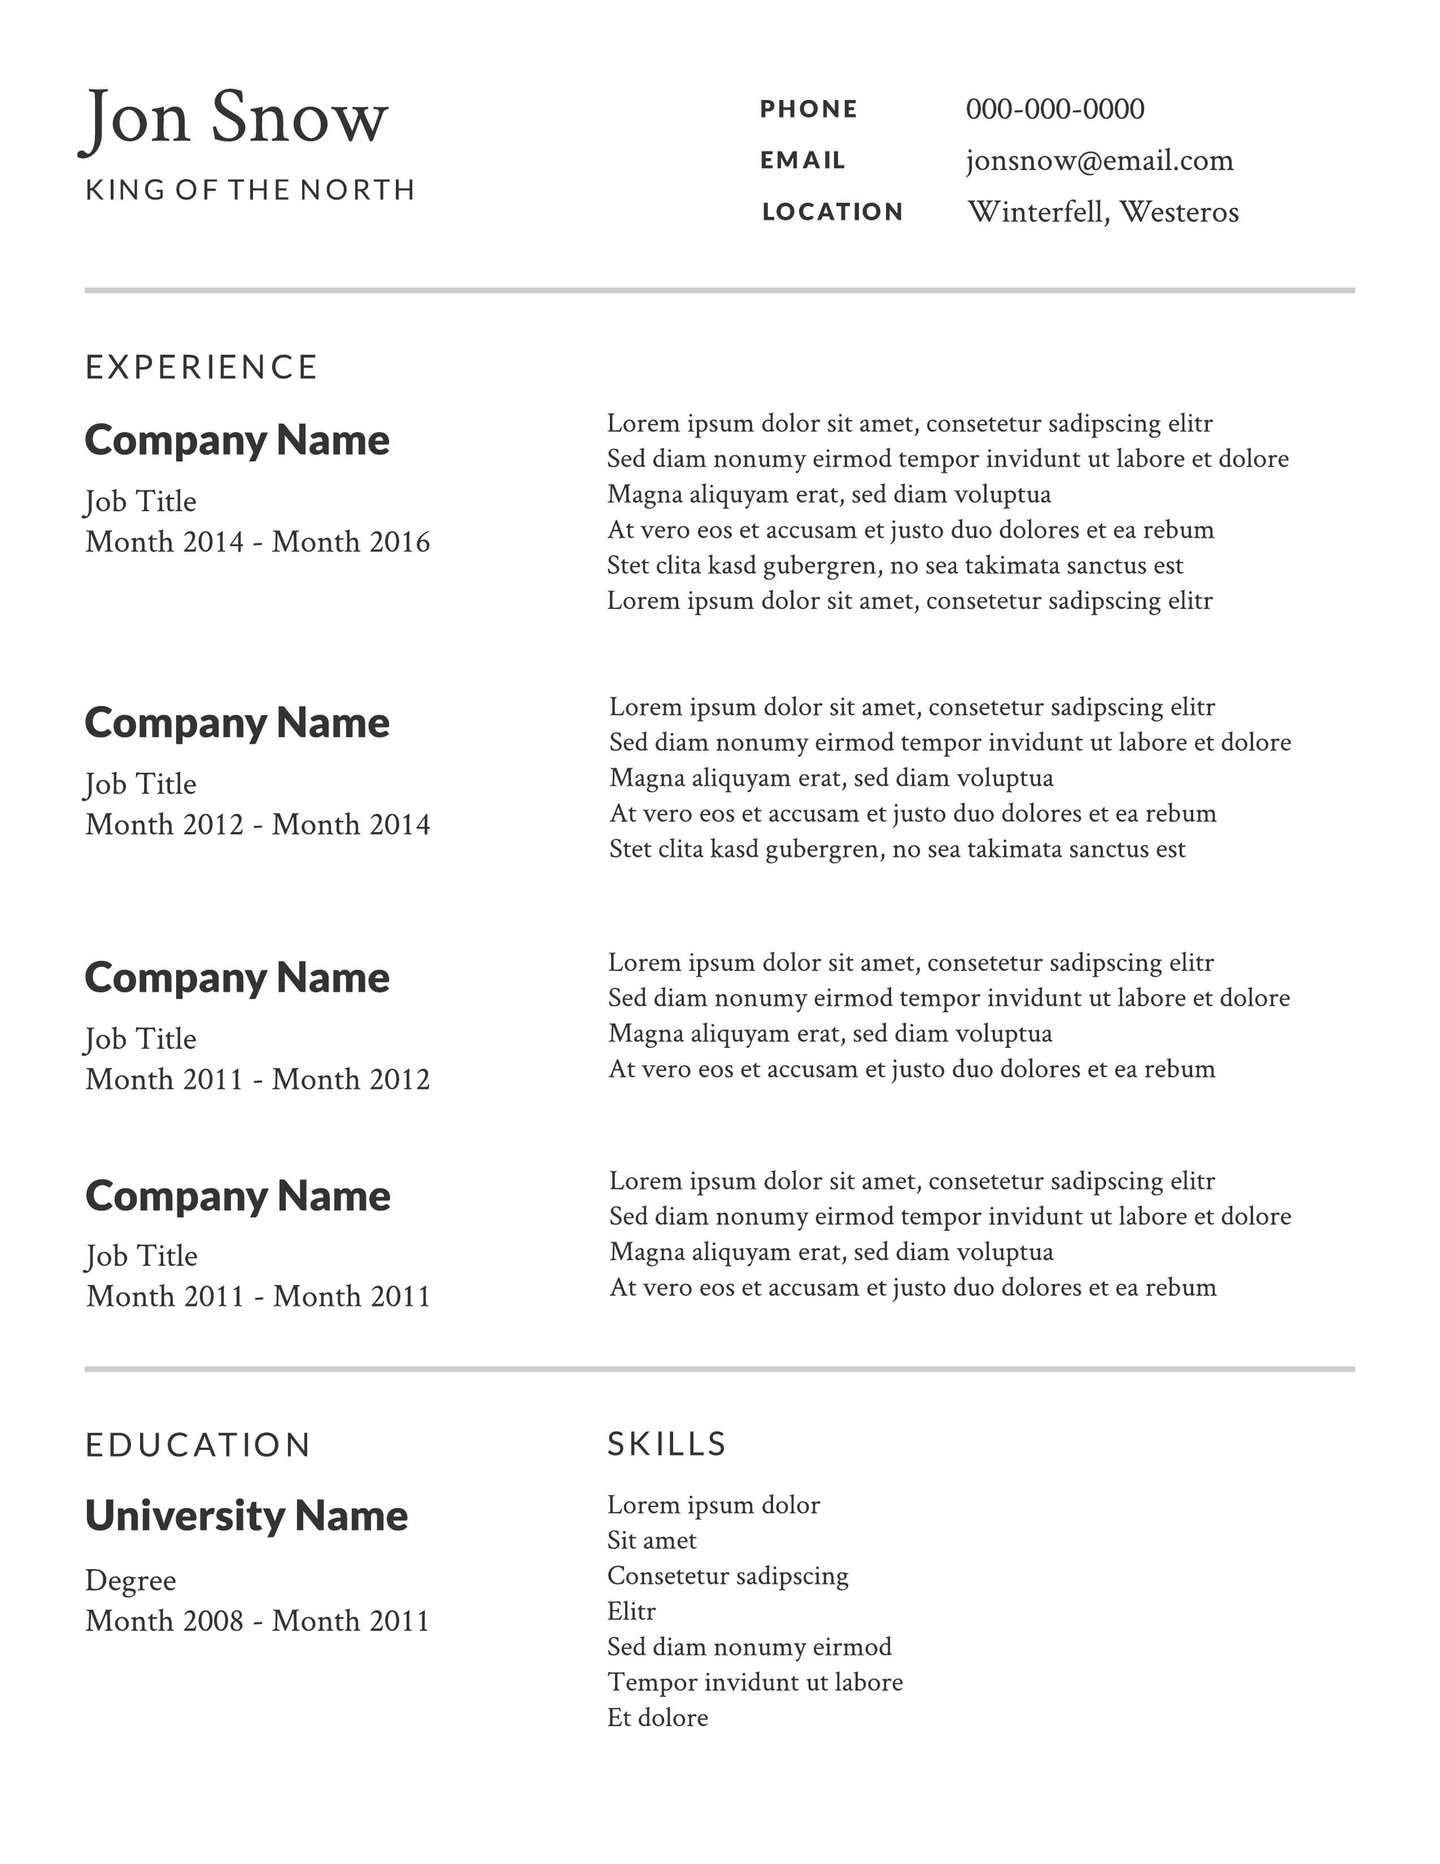 Resume Awesome 48 Free Resume Templates Examples Lucidpress